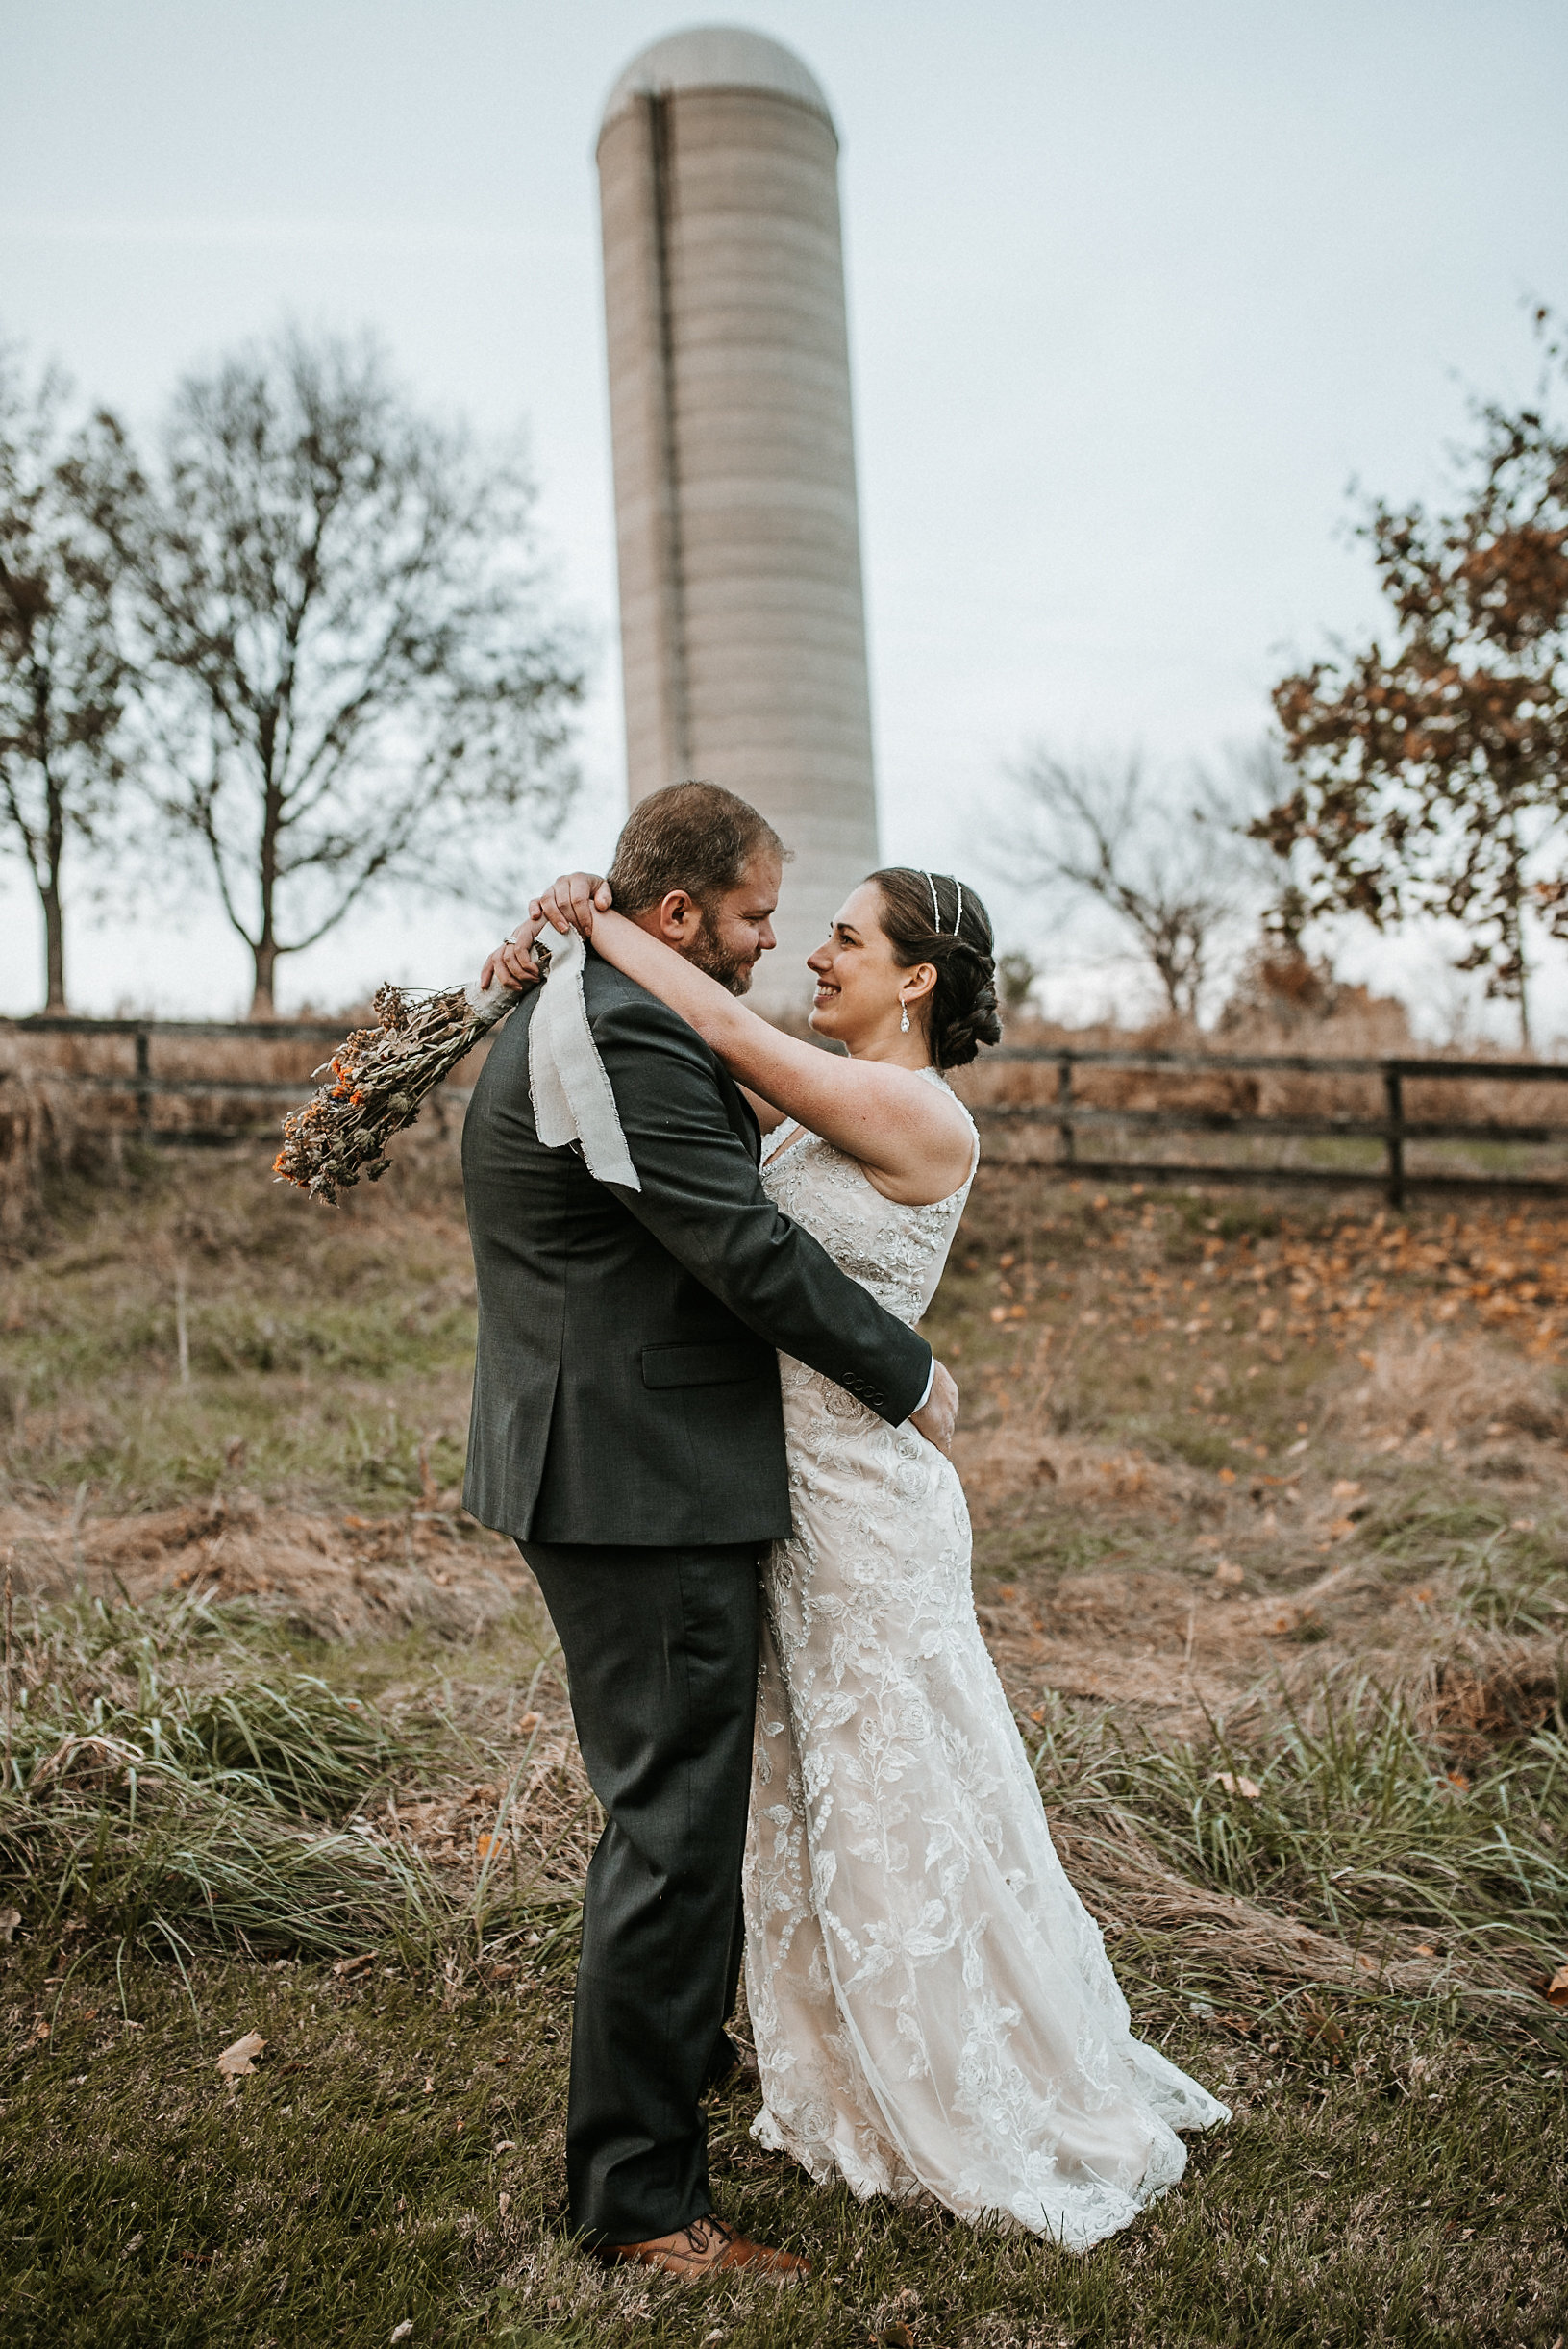 Bride and groom embracing in front of silo